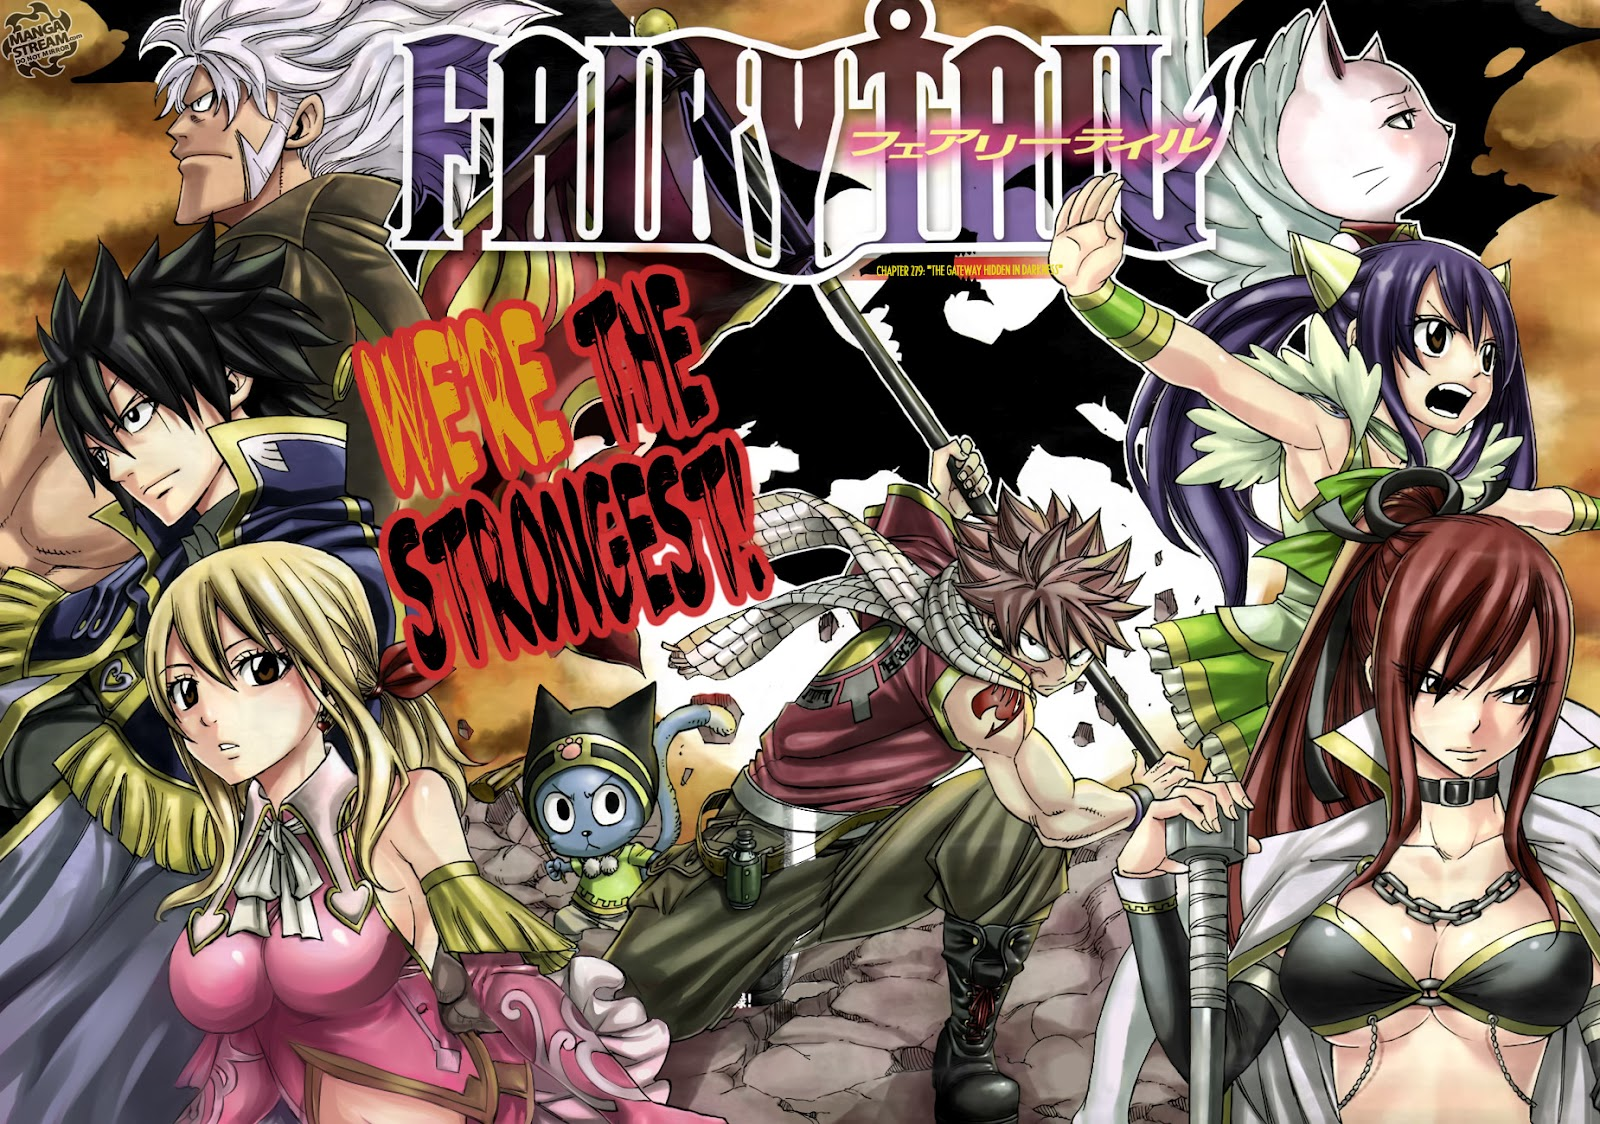 Official Fairy Tail Guild Recent Manga Chapter Chapter 279 The Door Hidden In The Darkness Sitri this form grants mirajane the appearance, abilities and powers of the demon sitri with its legs. official fairy tail guild recent manga chapter chapter 279 the door hidden in the darkness